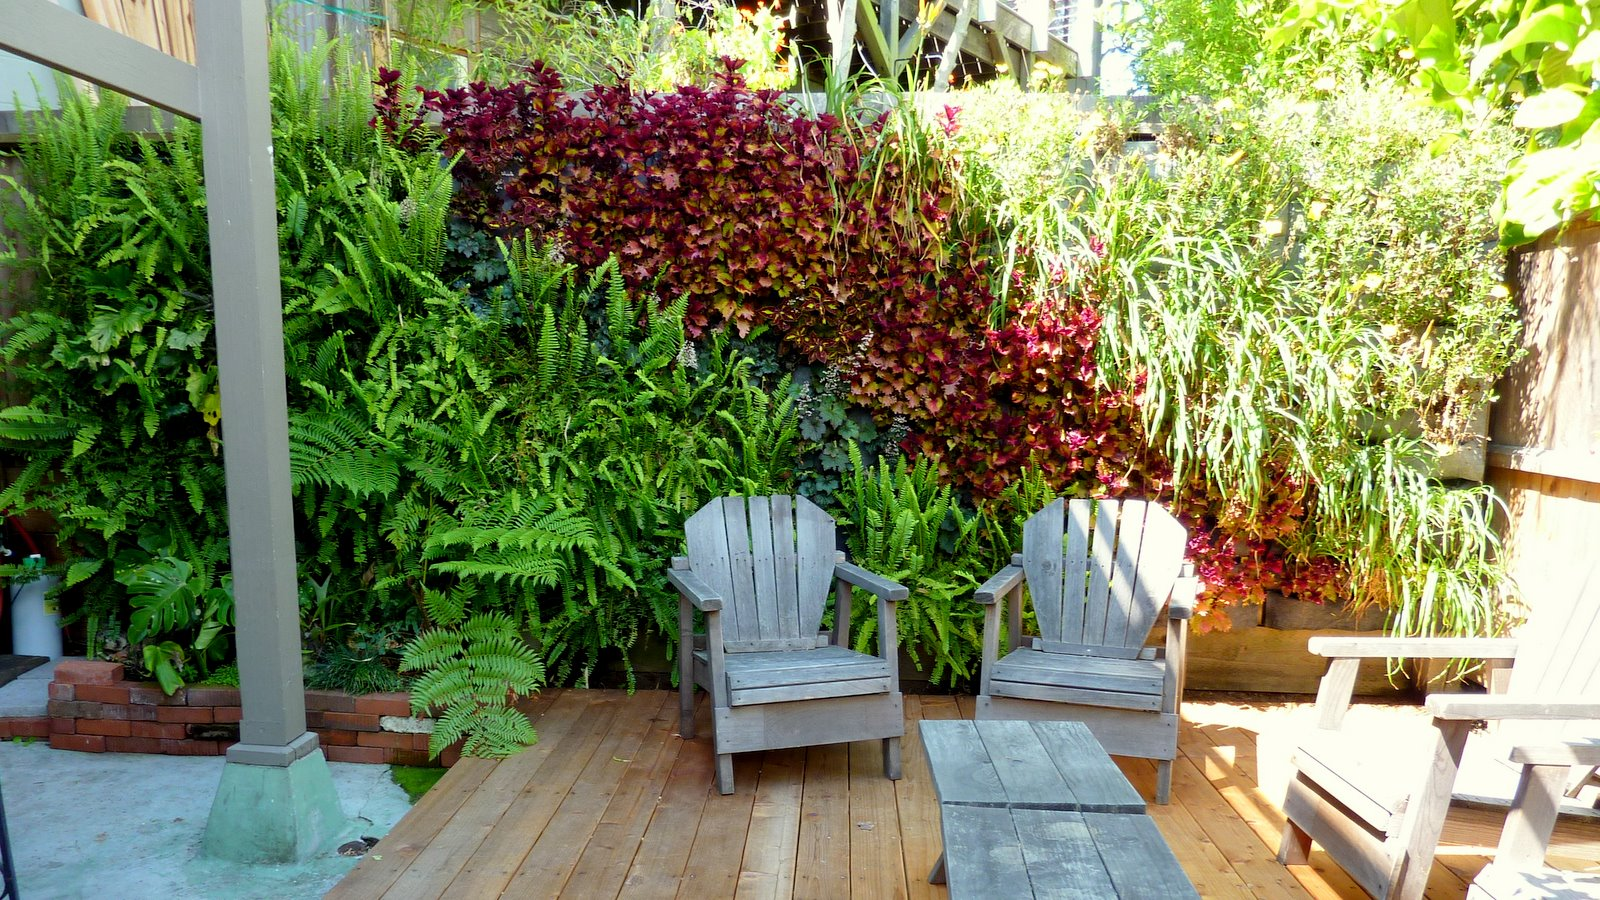 plants on walls vertical garden systems august 2011. Black Bedroom Furniture Sets. Home Design Ideas